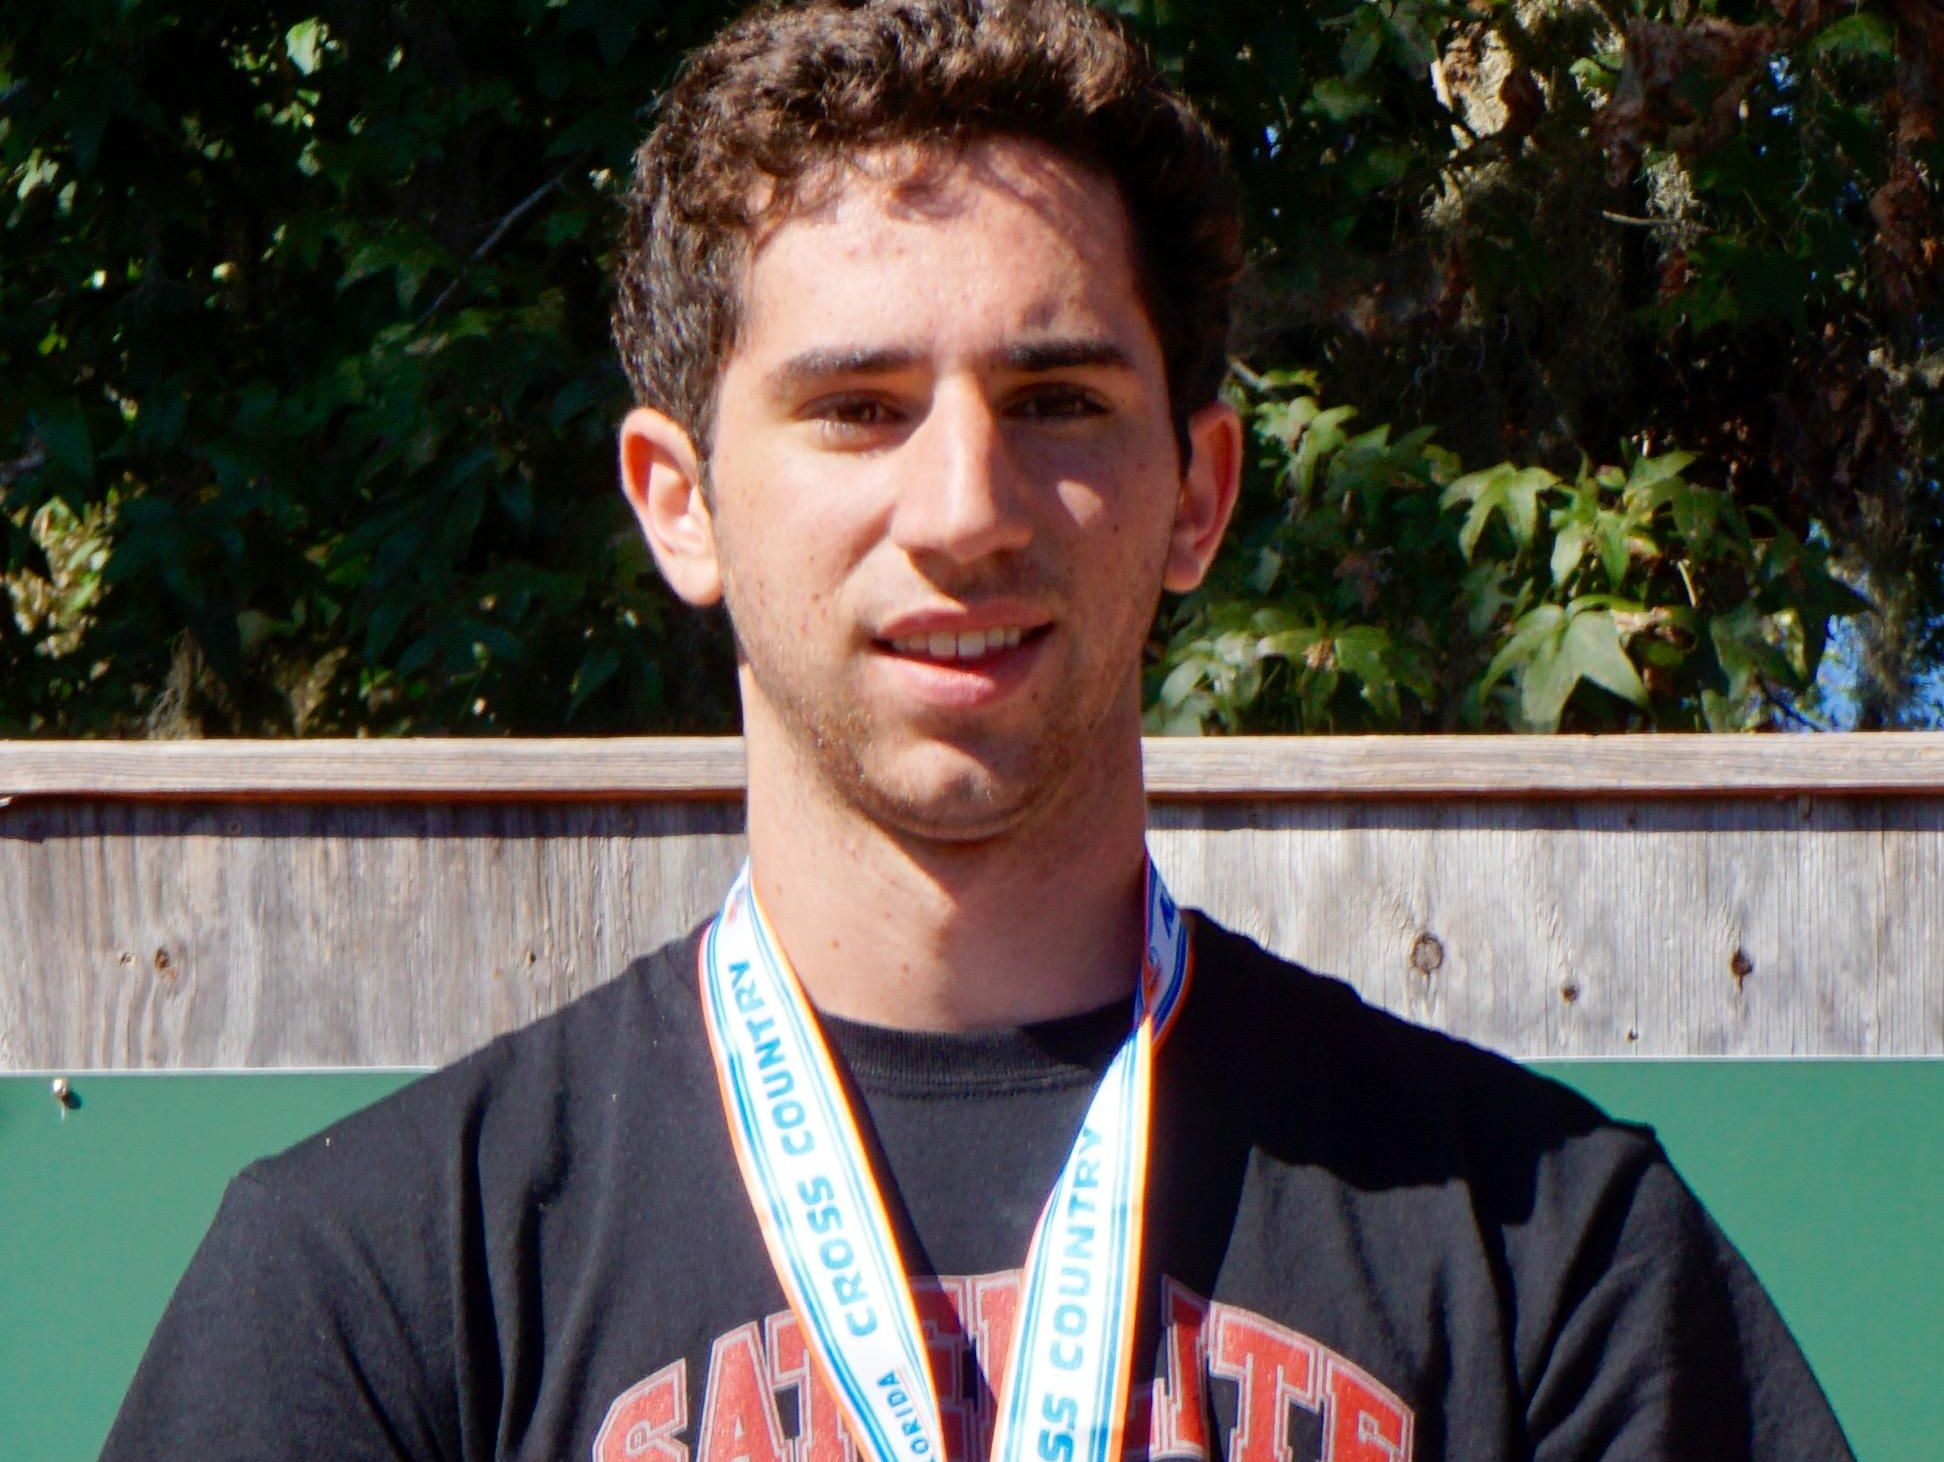 Satellite's John Cacciatore placed third with a personal-best 15:36.